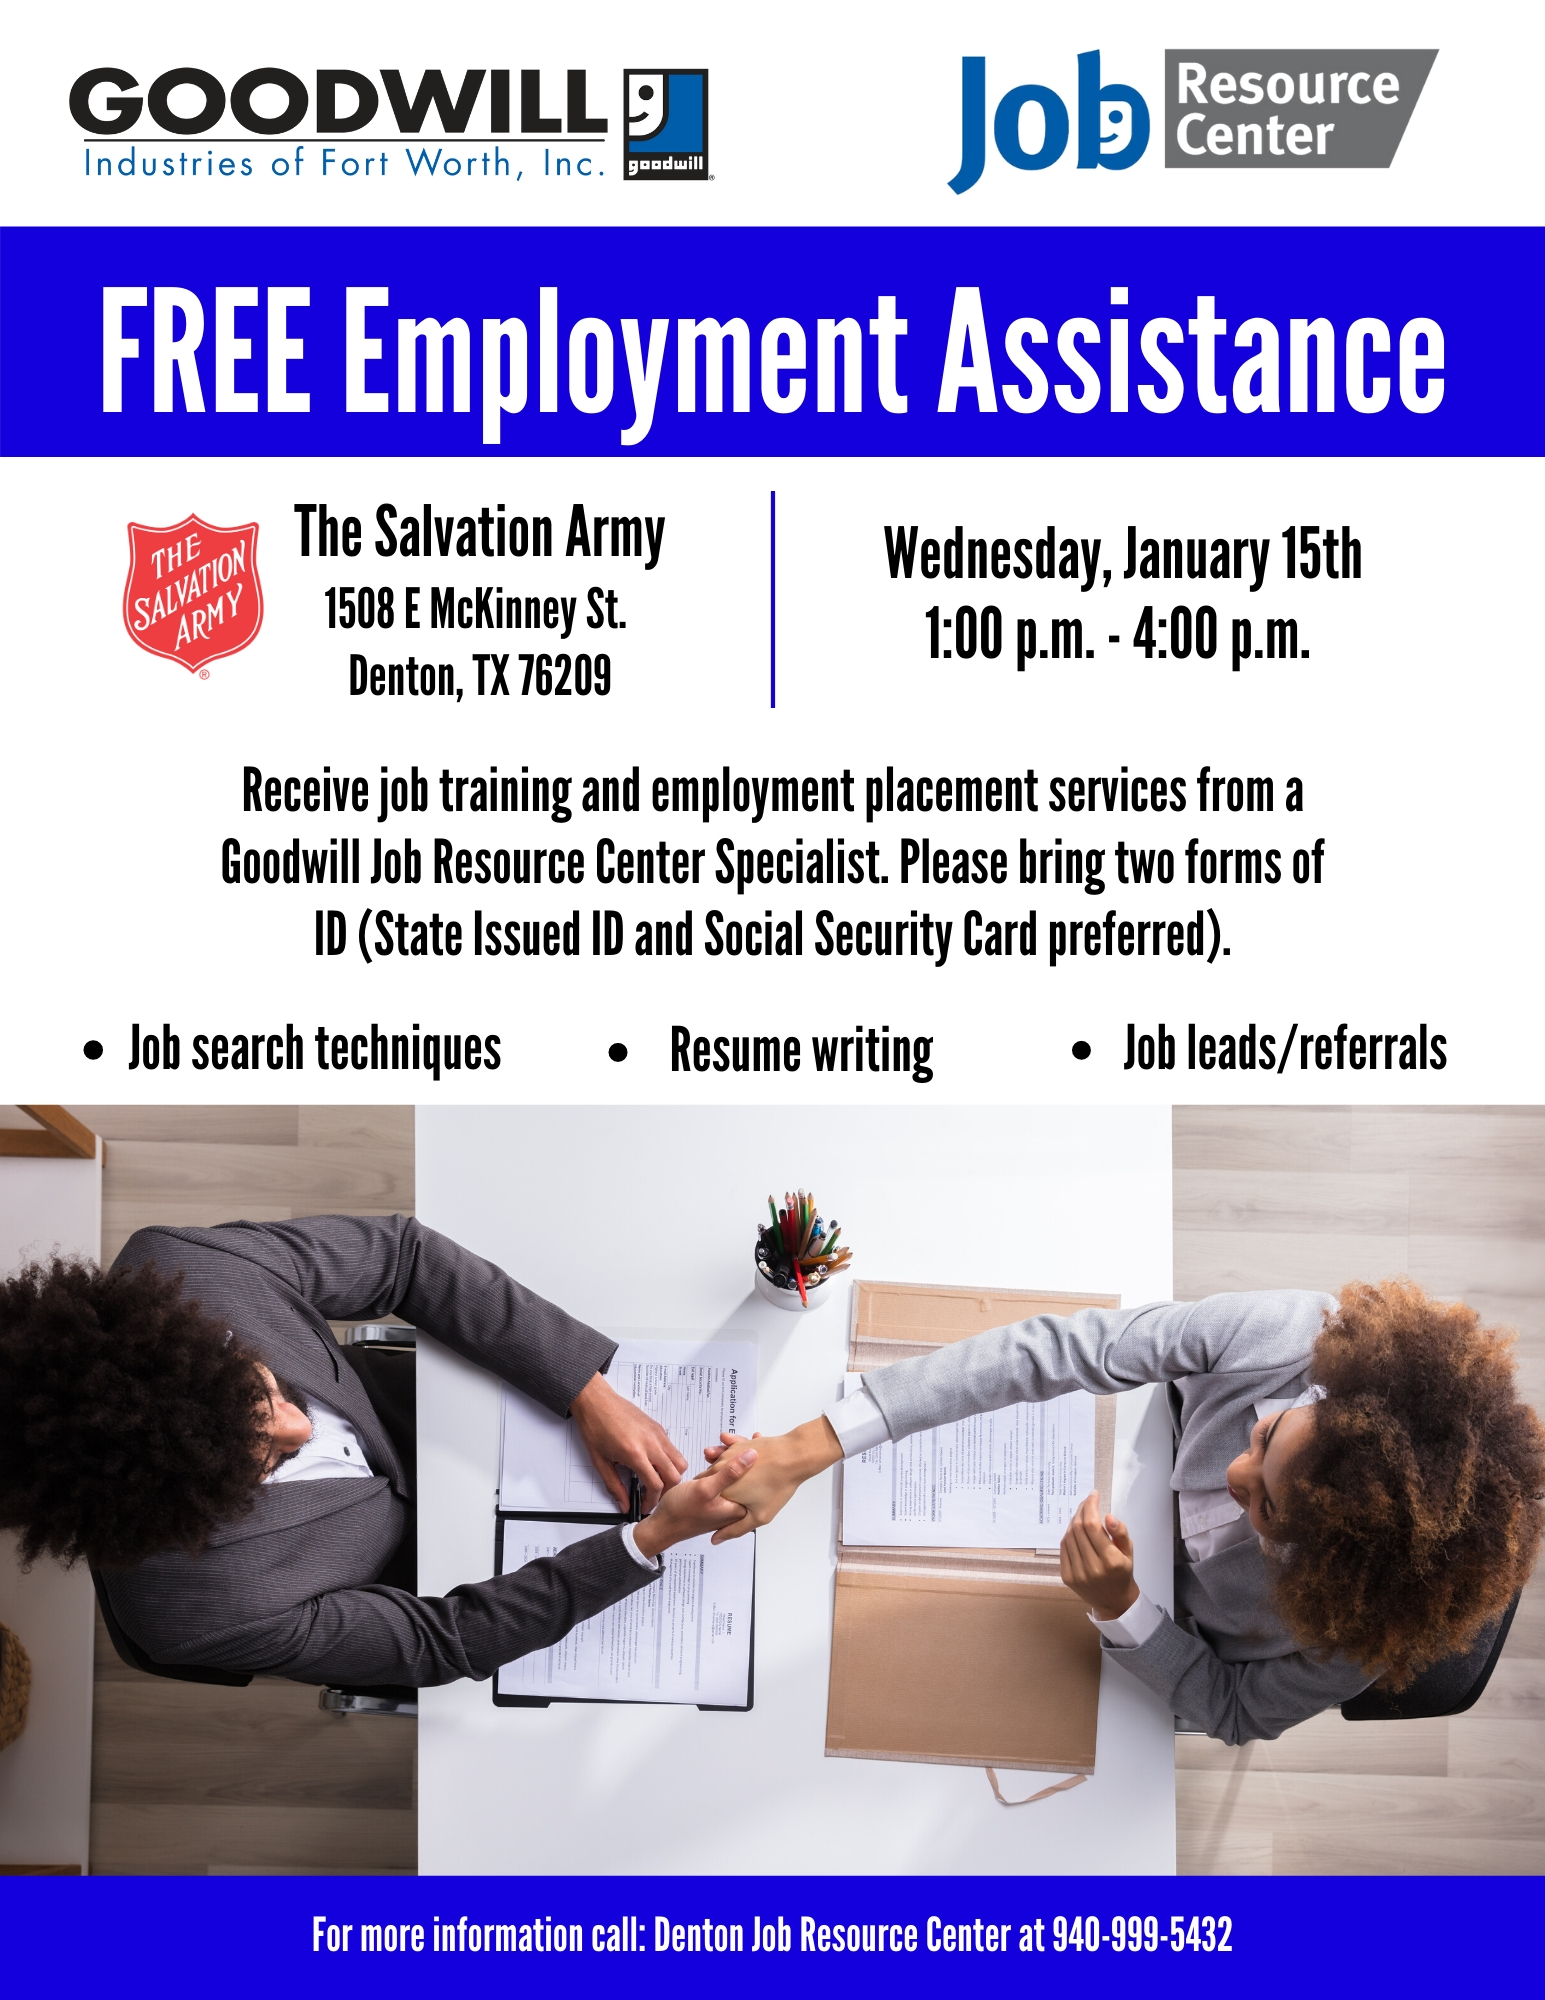 Employment Assistance At The Salvation Army Goodwill Industries Fort Worth